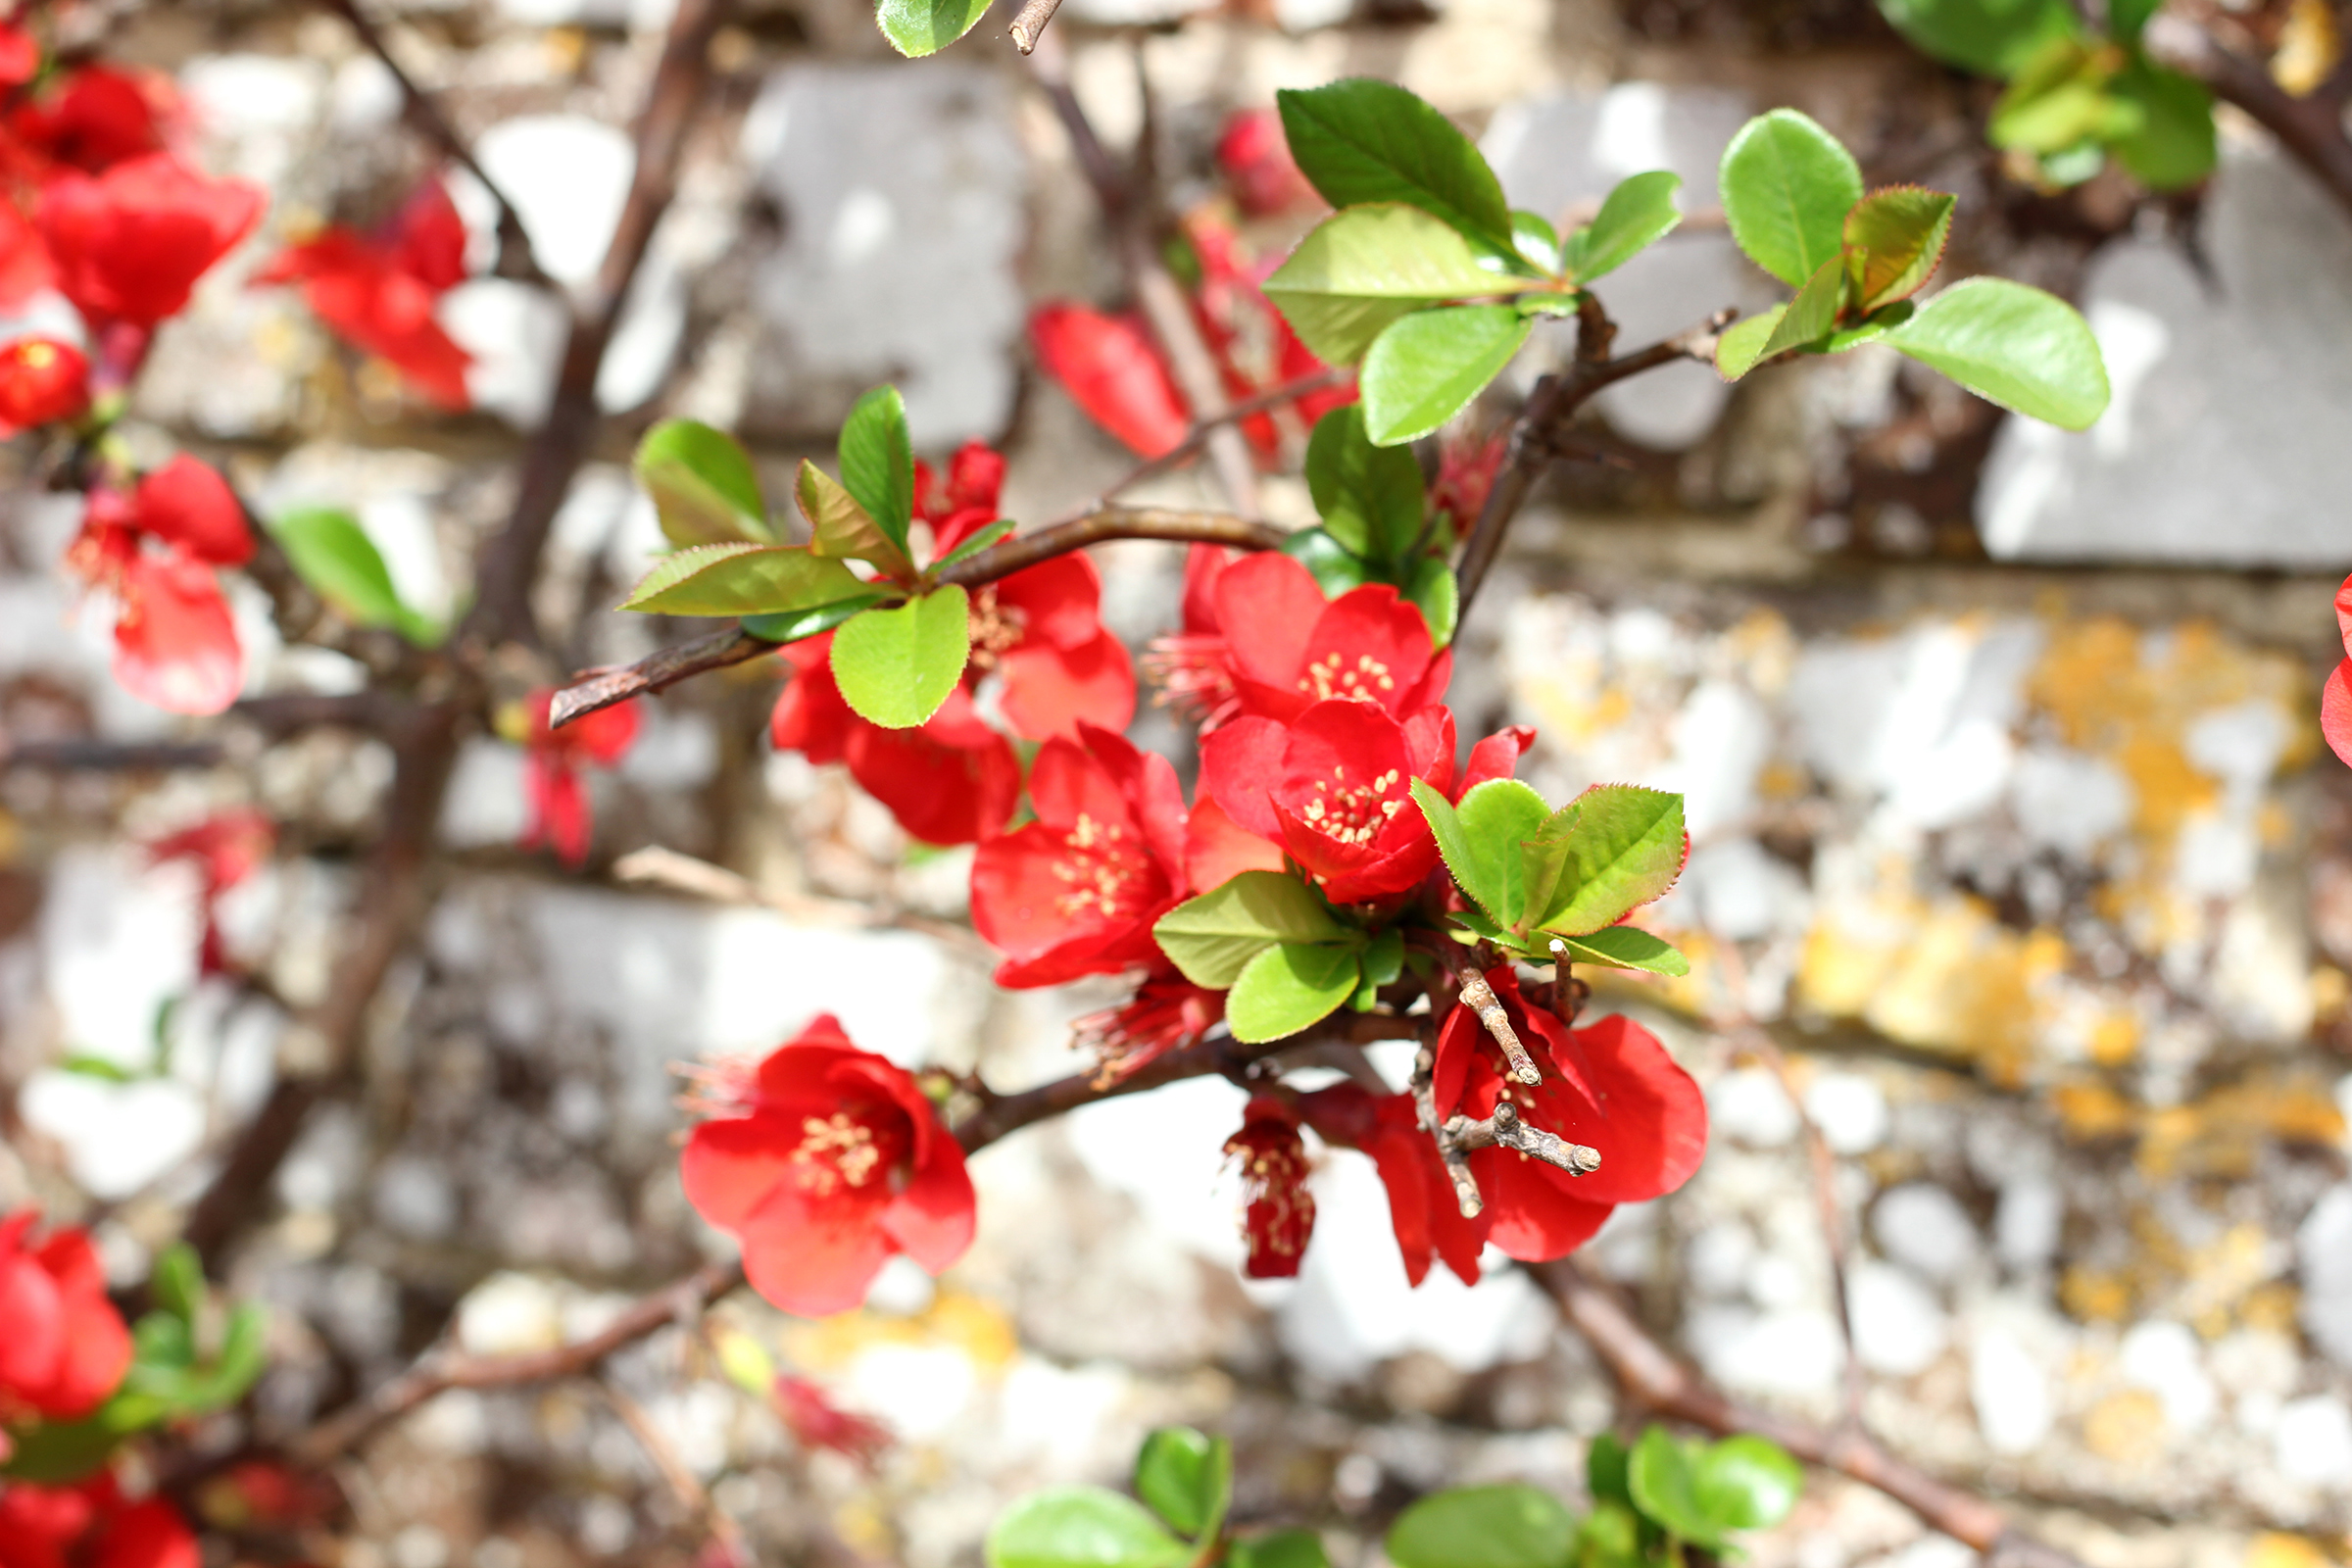 Chaenomeles x speciosa or Japanese quince 'Moerloosei'.